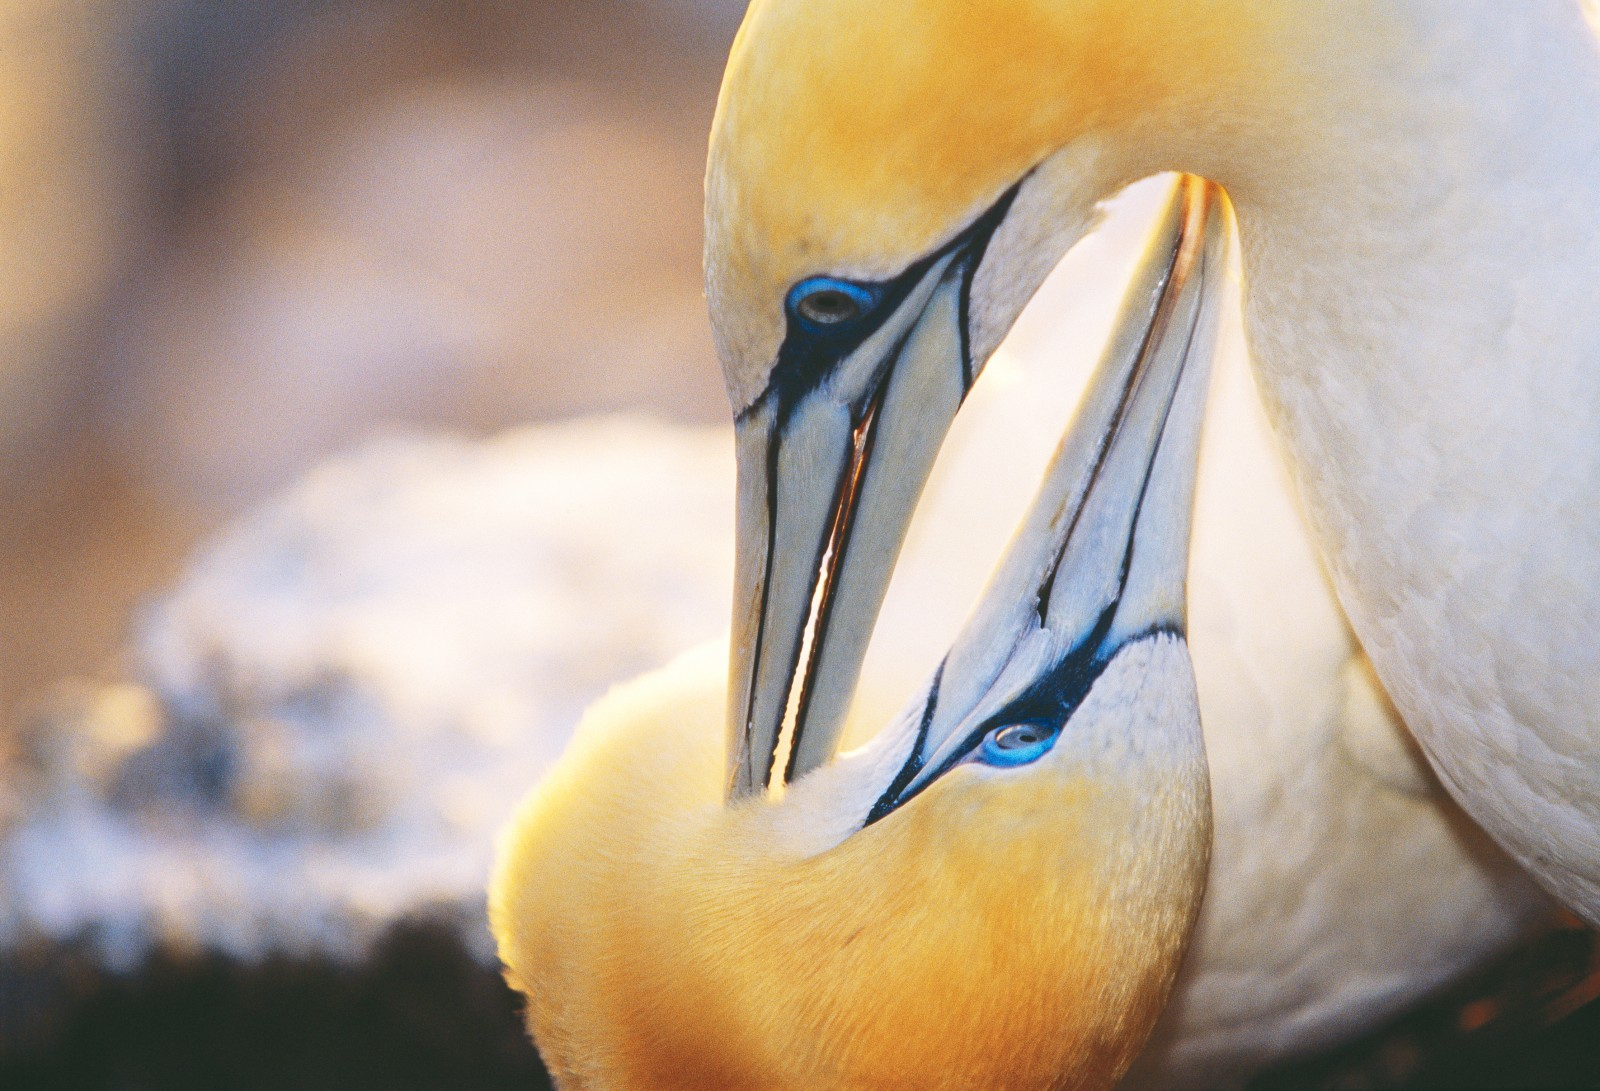 Gannets are thought to mate for life, but distinctive courtship displays and periods of mutual preening are regularly used to reinforce the pair bonds.